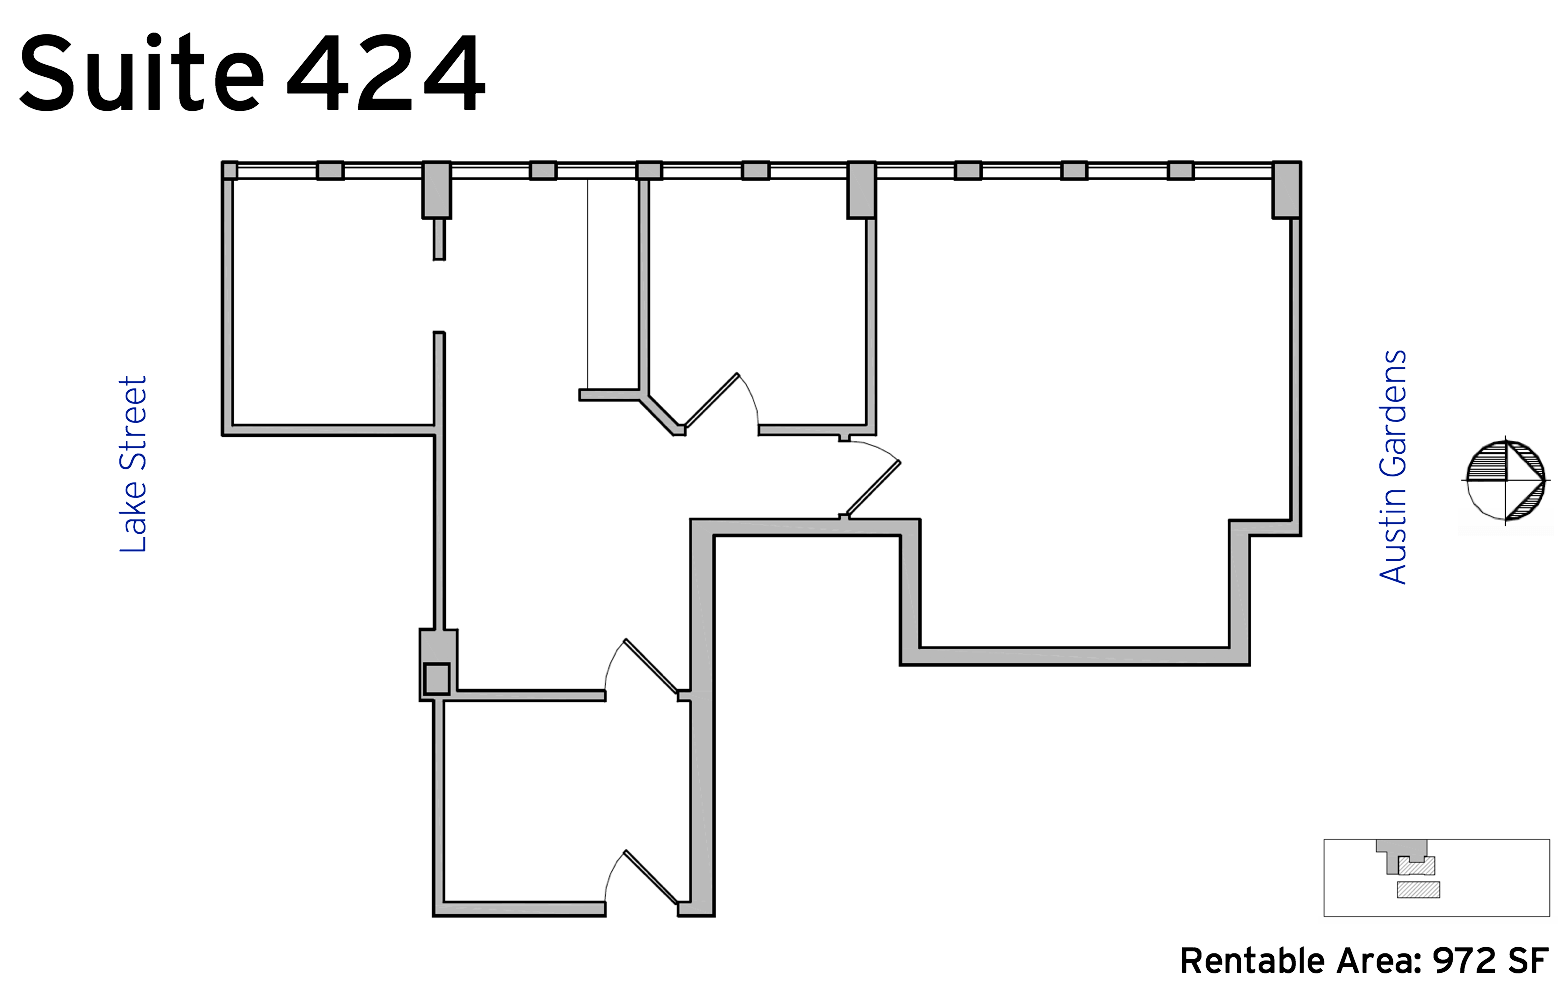 Suite 424 - 1010 Lake Street available office space floor plan